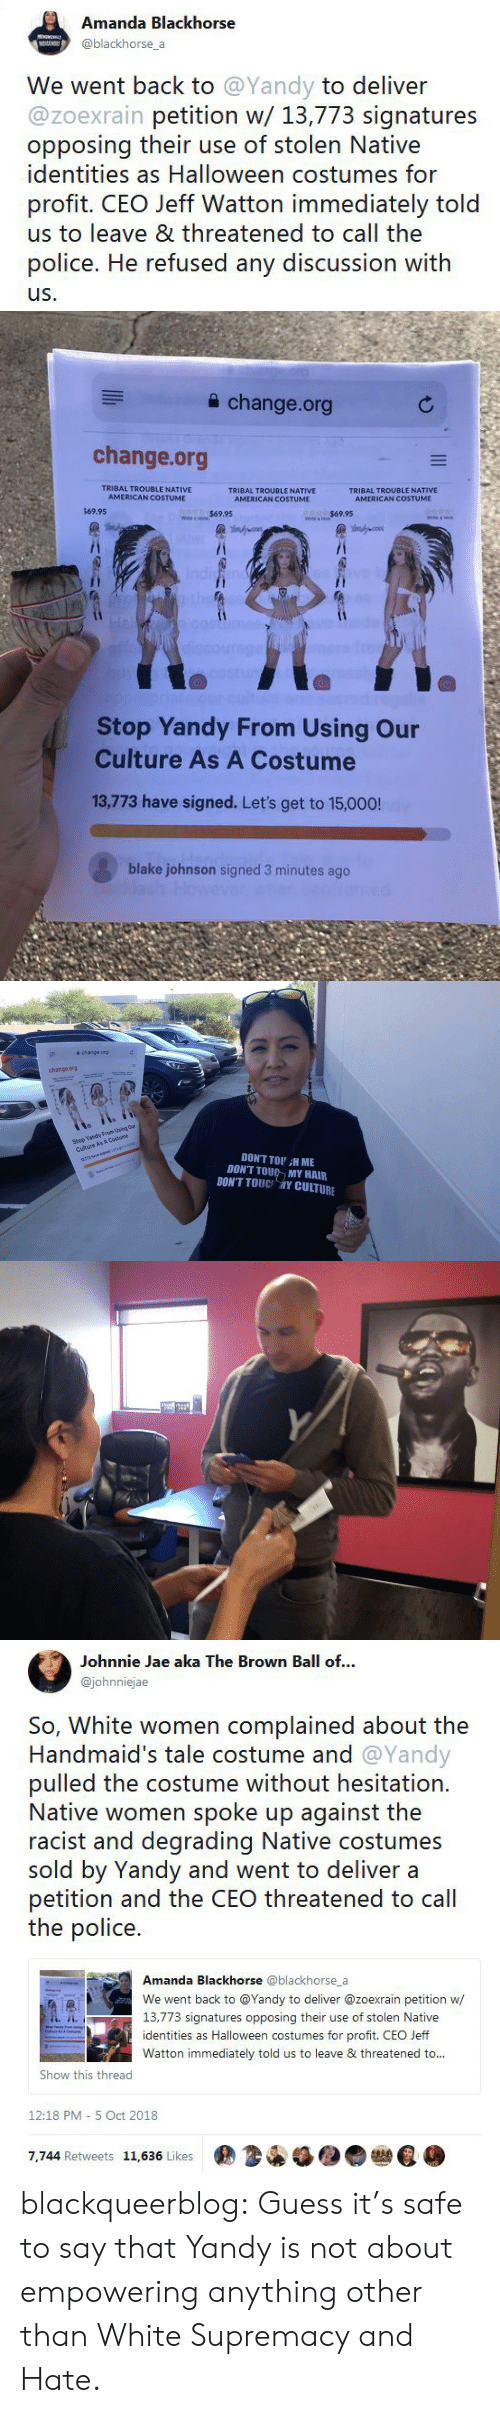 hesitation: Amanda Blackhorse  @blackhorse a  We went back to @Yandy to deliver  @zoexrain petition w/ 13,773 signatures  opposing their use of stolen Native  identities as Halloween costumes for  profit. CEO Jeff Watton immediately told  us to leave & threatened to call the  police. He refused any discussion with  us.   a change.org  change.org  TRIBAL TROUBLE NATIVE  AMERICAN COSTUME  TRIBAL TROUBLE NATIVE  AMERICAN COSTUME  TRIBAL TROUBLE NATIVE  69.95  $69.95  Stop Yandy From Using Our  Culture As A Costume  13,773 have signed. Let's get to 15,000!  blake johnson signed 3 minutes ago   슐 change.org  change.org  Stop Yandy From Using Our  Culture As A Costume  13773 have signed. Lets get to 150  DON'T TOU H ME  DON'T TOU MY HAIR  DONT TOUC 개Y CULTURE   Johnnie Jae aka The Brown Ball of...  @johnniejae  So, White women complained about the  Handmaid's tale costume and @Yandy  pulled the costume without hesitation.  Native women spoke up against the  racist and degrading Native costumes  sold by Yandy and went to deliver a  petition and the CEO threatened to cal  the police.  Amanda Blackhorse @blackhorse_a  We went back to @Yandy to deliver @zoexrain petition w  13,773 signatures opposing their use of stolen Native  identities as Halloween costumes for profit. CEO Jeff  Watton immediately told us to leave & threatened to..  Show this thread  12:18 PM- 5 Oct 2018  7,744 Retweets 11,636 Likes  佣34锰●● blackqueerblog:  Guess it's safe to say that Yandy is not about empowering anything other than White Supremacy and Hate.